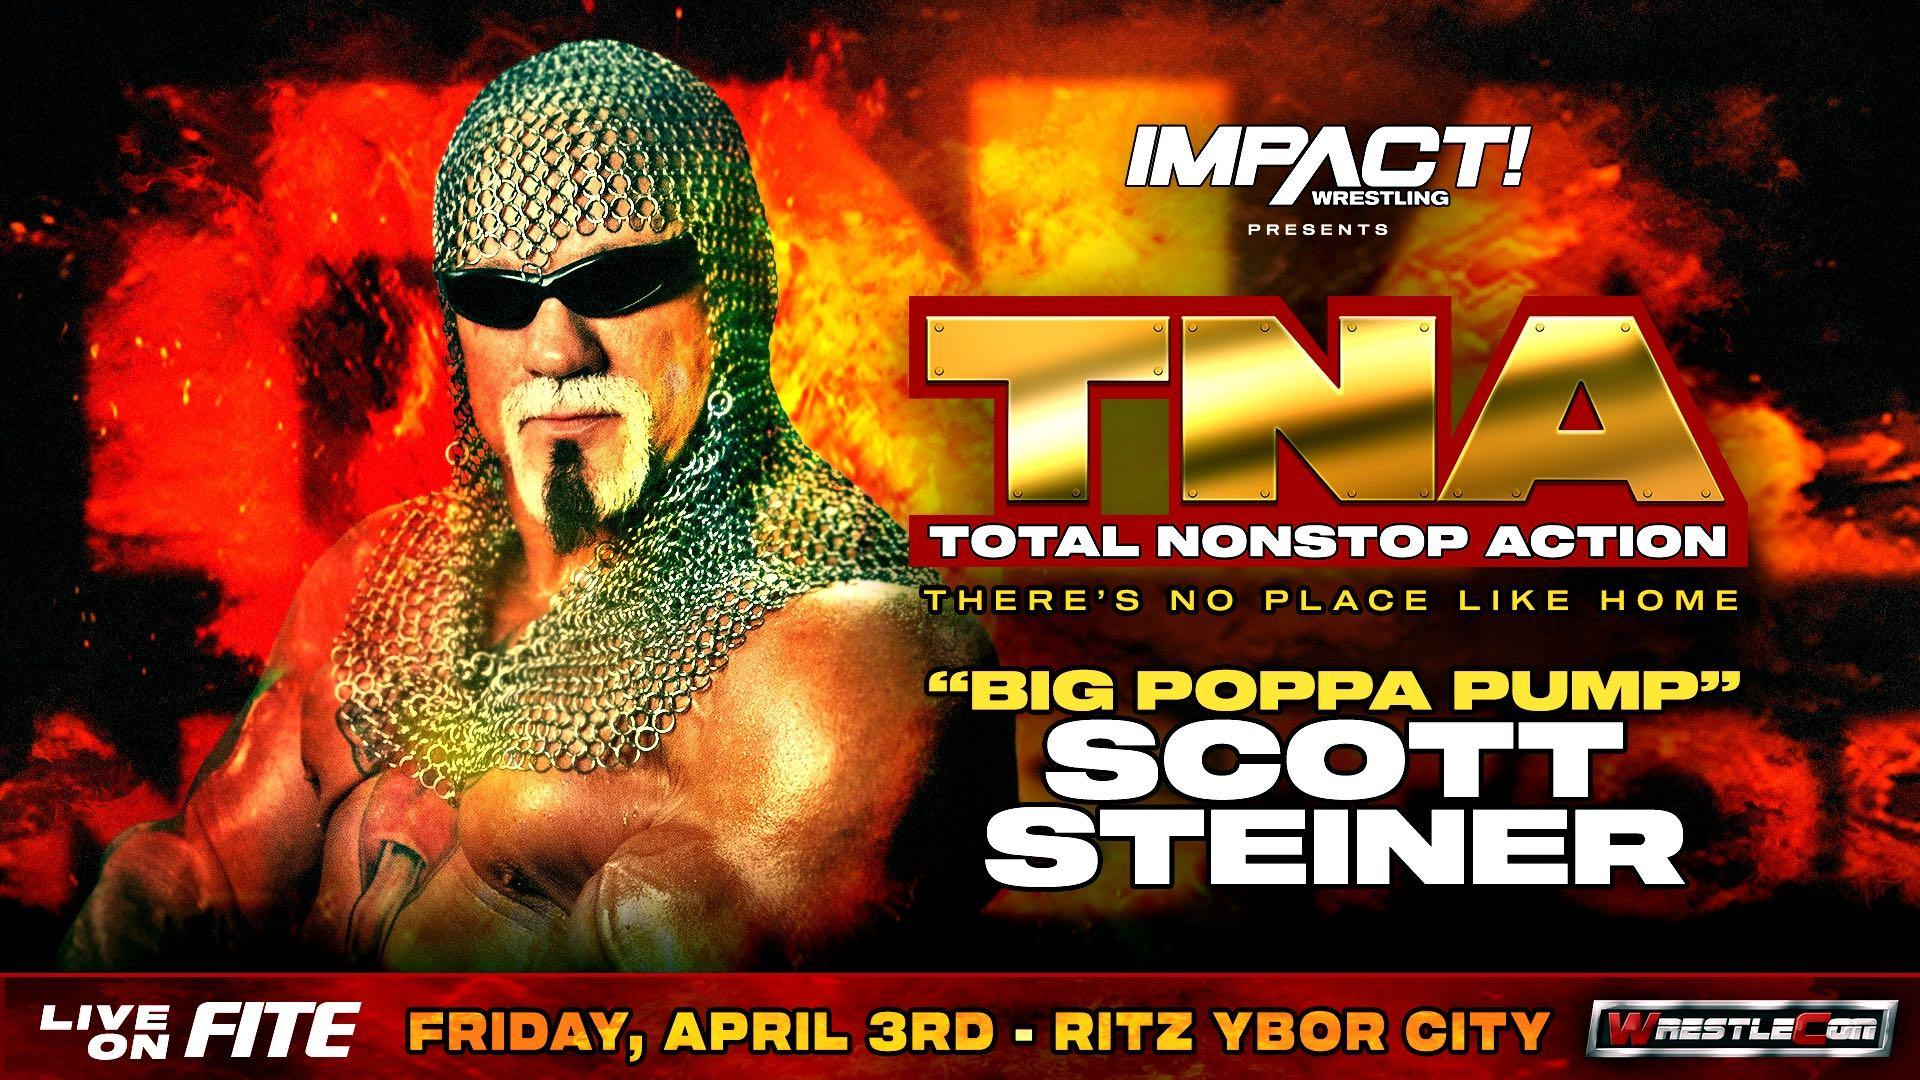 Scott Steiner Announced For TNA: There's No Place Like Home